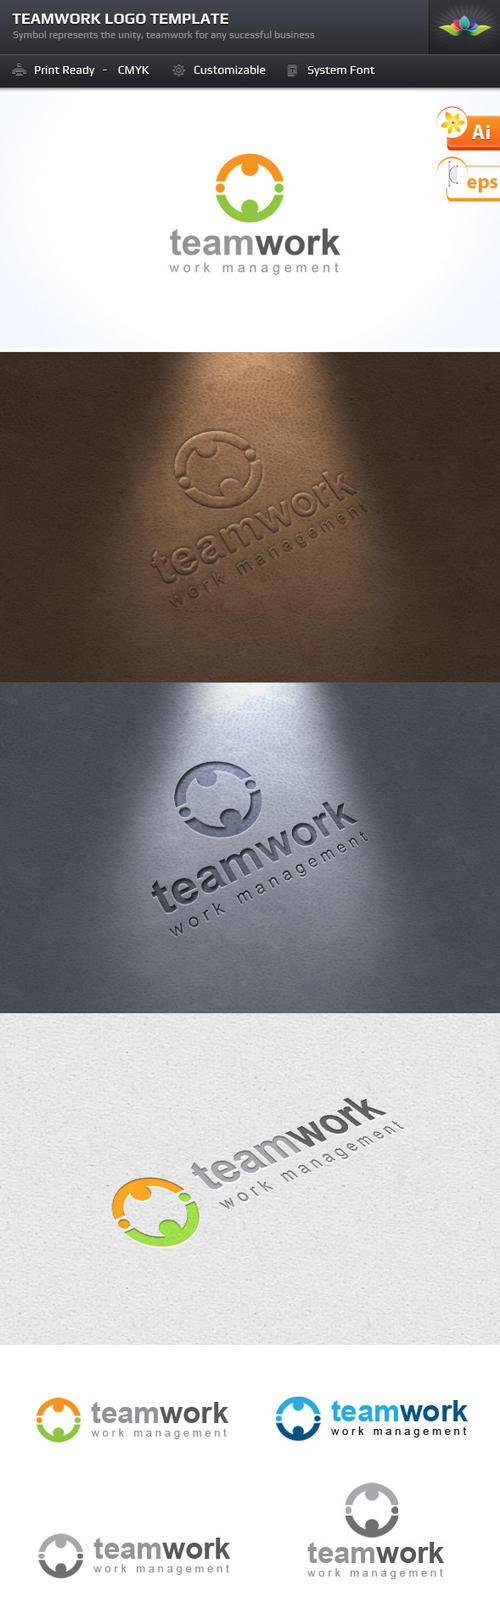 Teamwork Logo by Saptarang